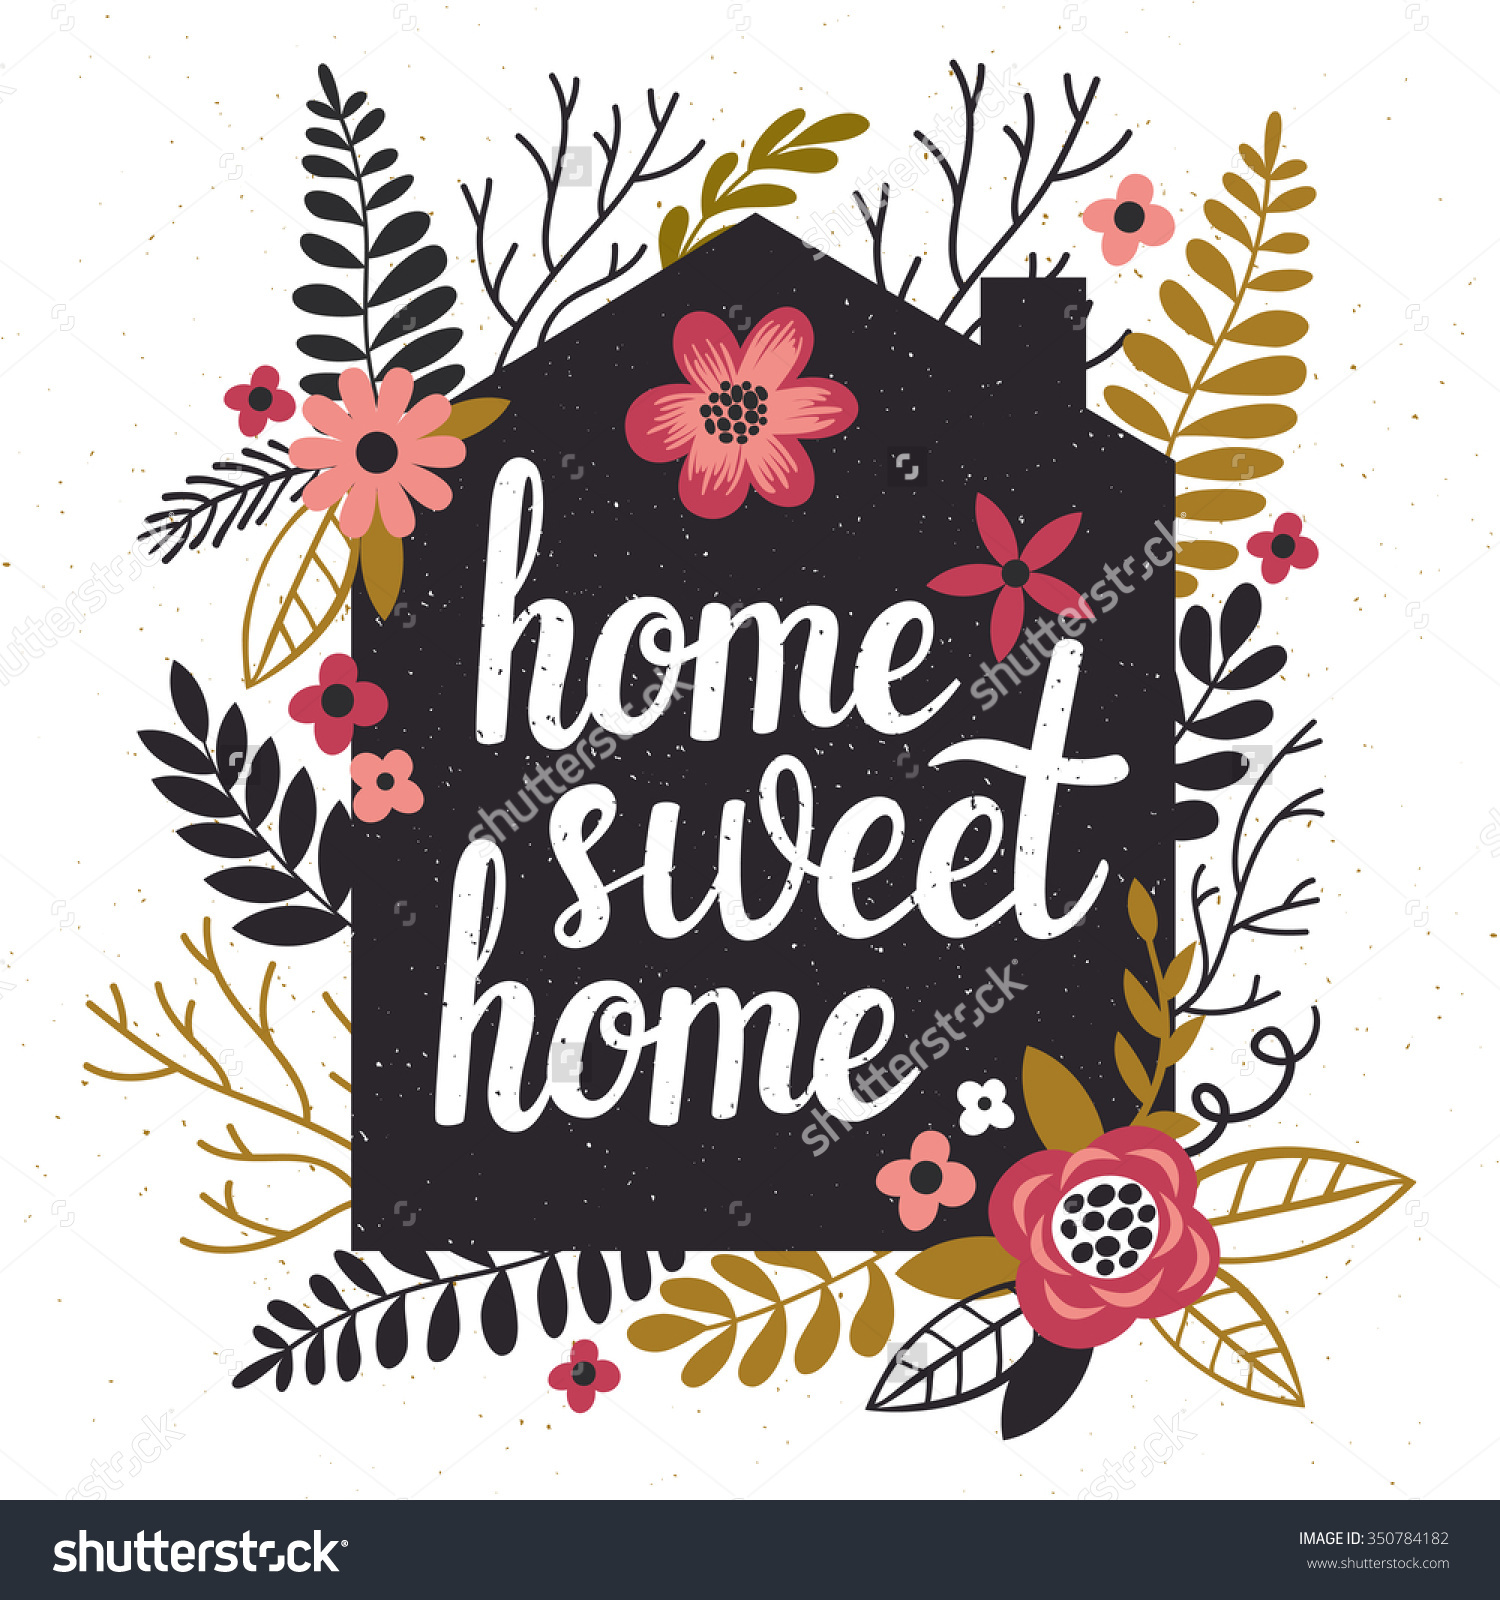 Home sweet home house silhouette clipart svg library download Vector Illustration Black Houses Silhouette Floral Stock Vector ... svg library download